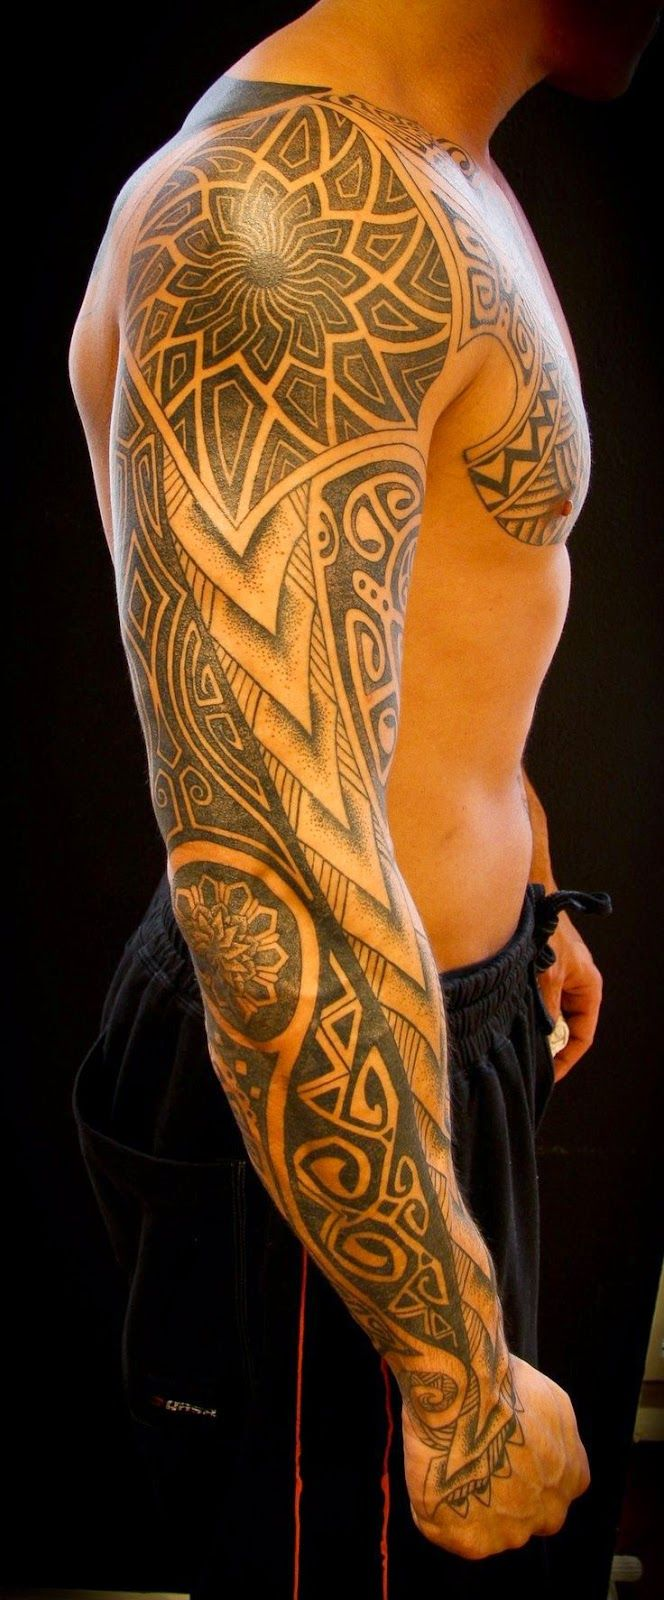 Sleeve Tattoos: Awesome Sleeve Tattoos